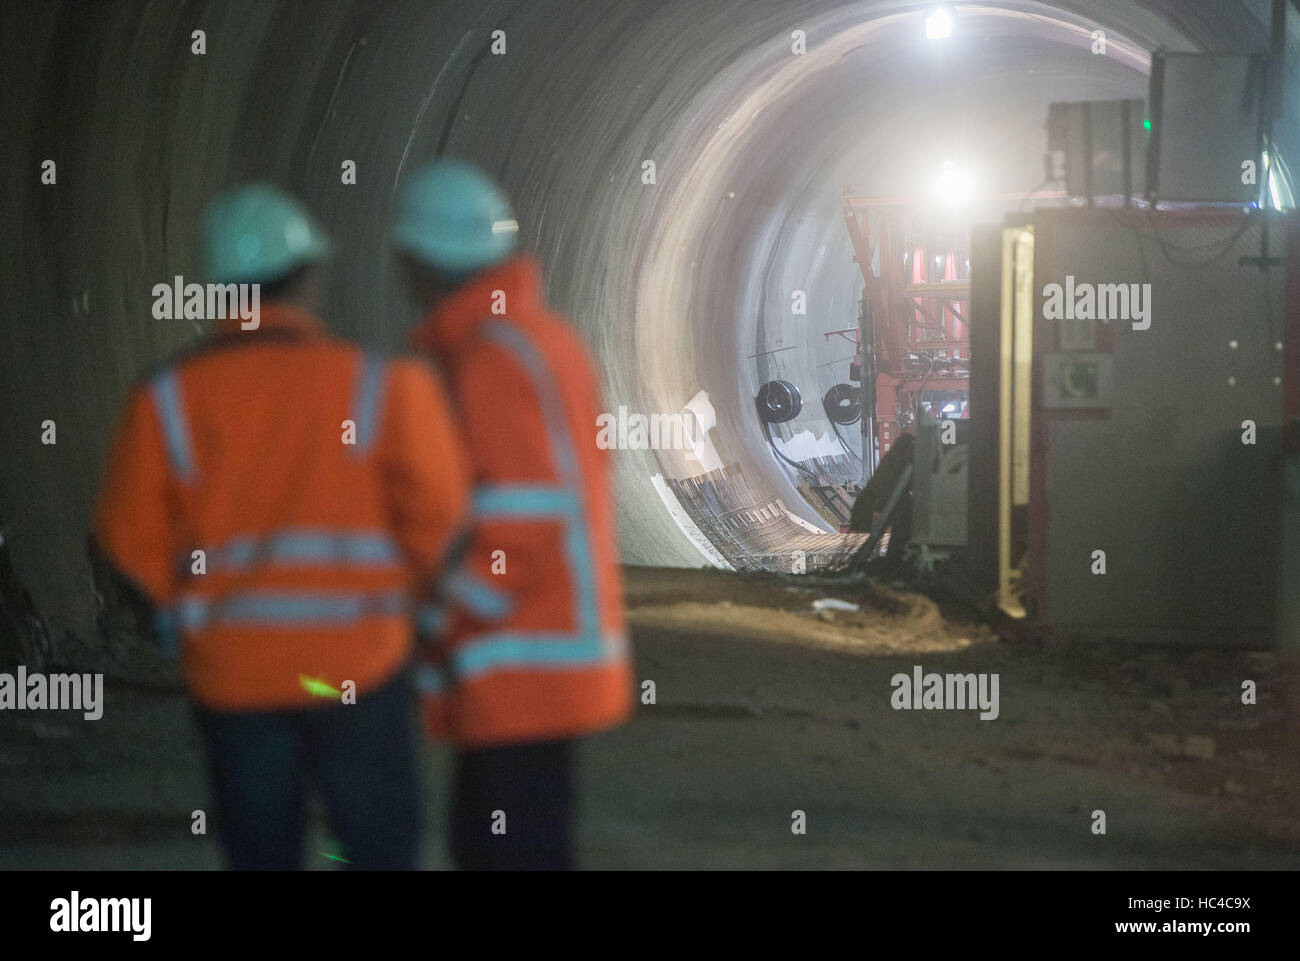 Stuttgart, Germany. 08th Dec, 2016. Construction workers in a tunnel during a tour of the building site where a Stock Photo